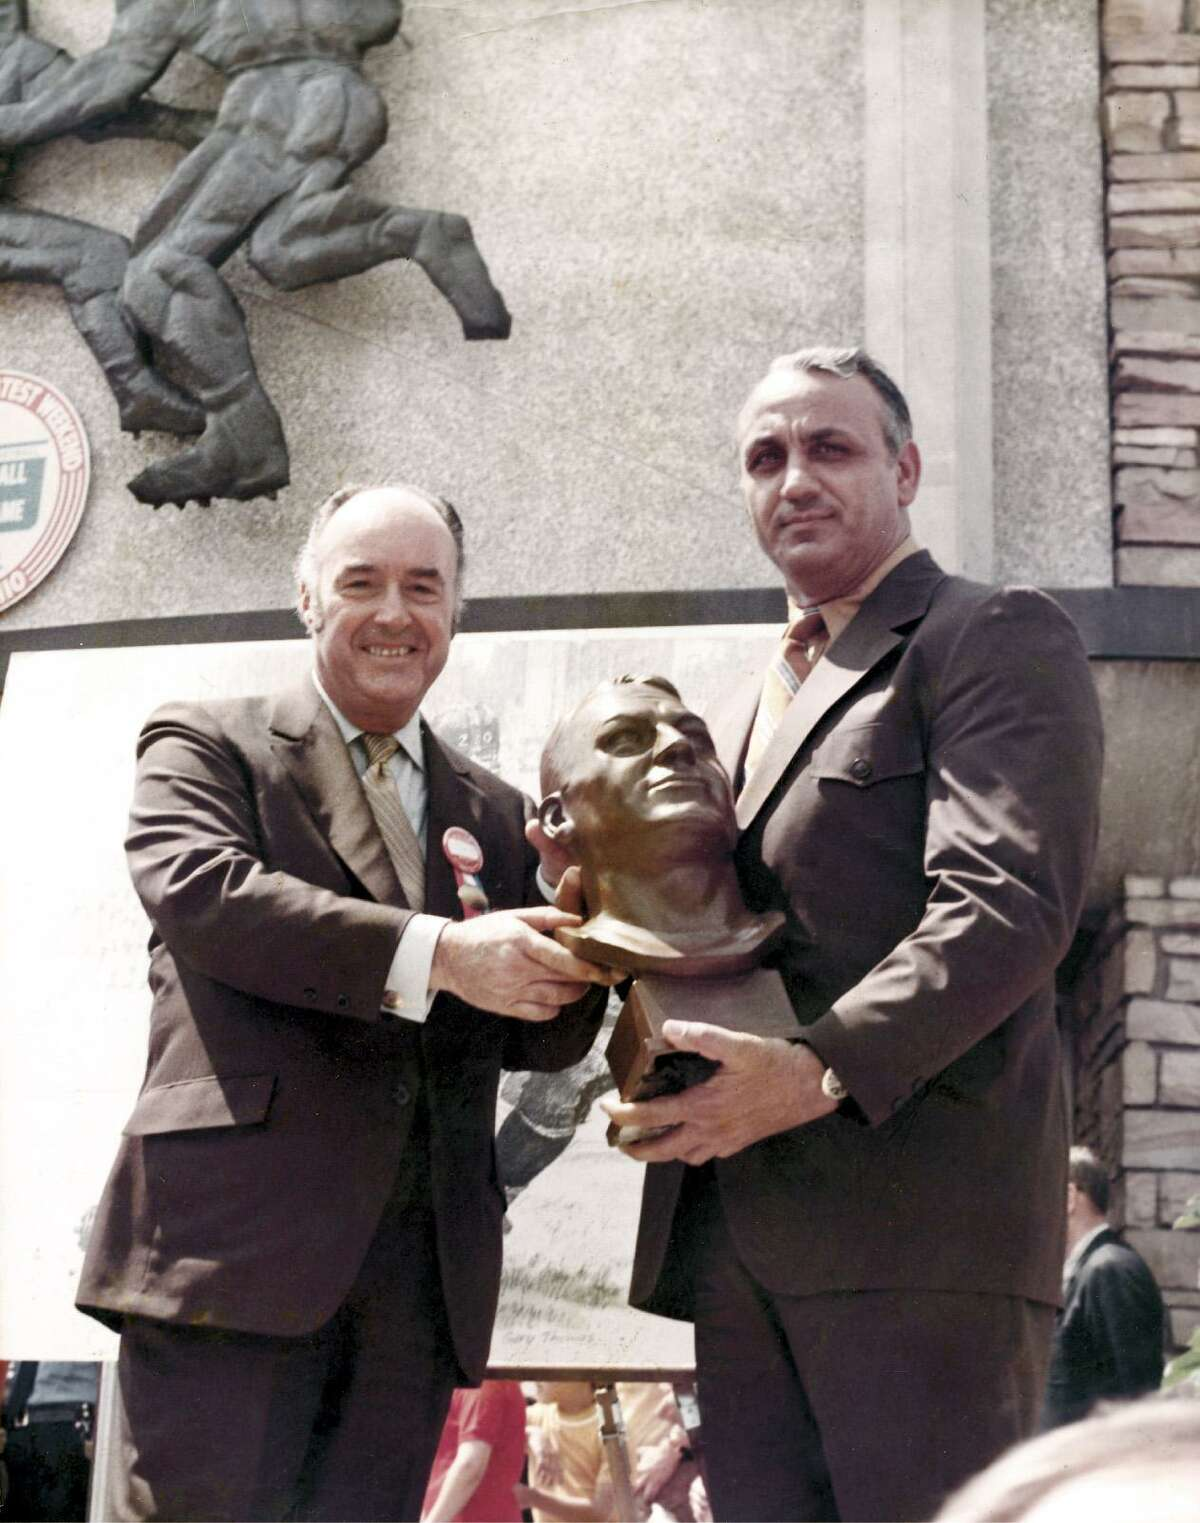 J. Walter Kennedy, left, and Andy Robustelli at Robustelli's induction into the Pro Football Hall of Fame in 1971. Kennedy, a former Stamford mayor, was National Basketball Association commissioner from 1963-1975. Robustelli, an eight-time All-Pro, was a standout with the Los Angeles Rams and New York Giants.